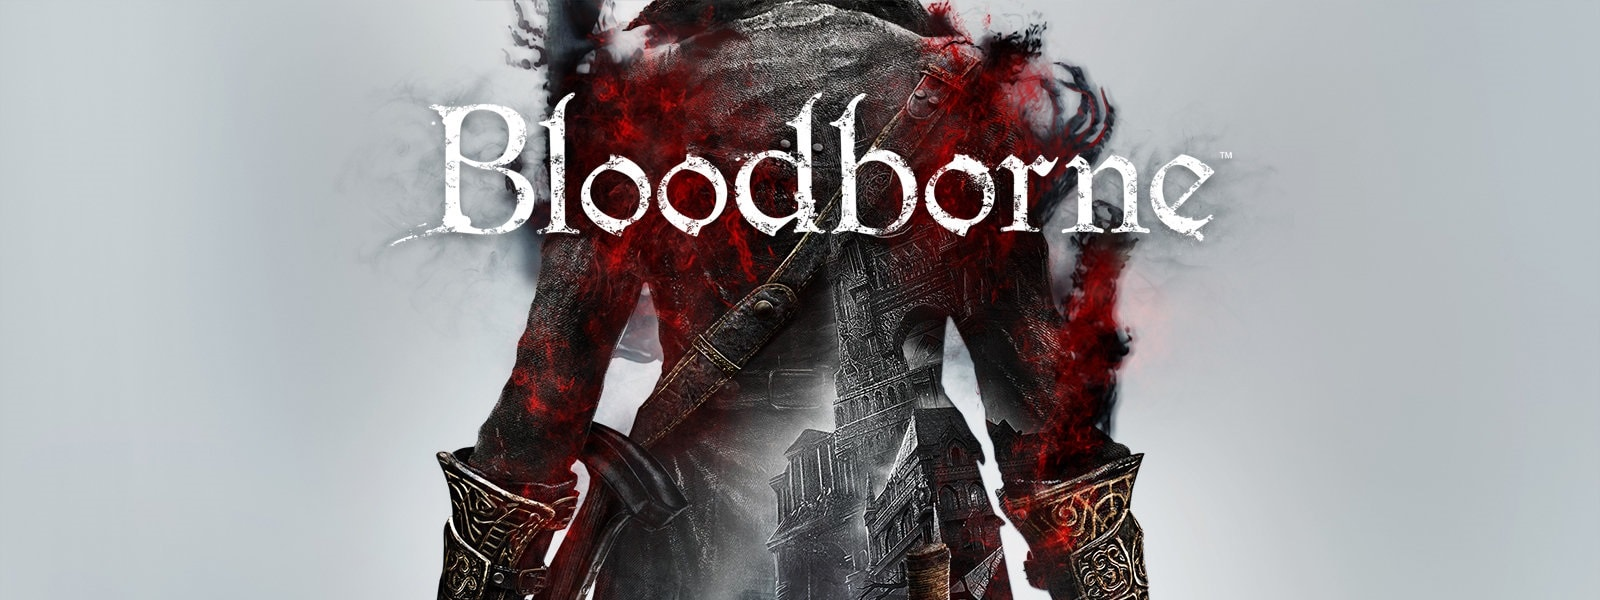 Bloodborne - Single player games